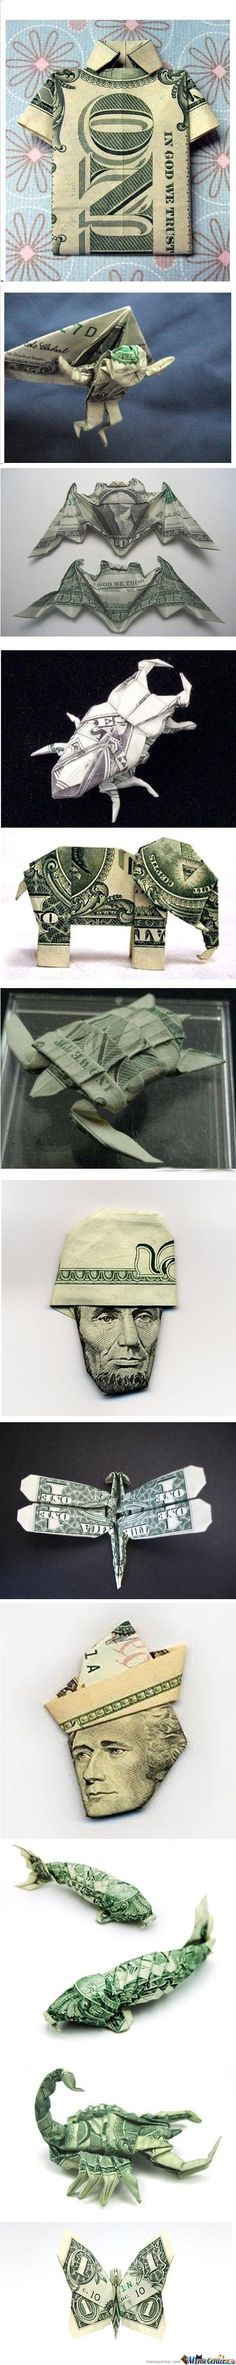 Folded Money - someone got really creative ;-) would make nice gift in a card with right shape for the right person.